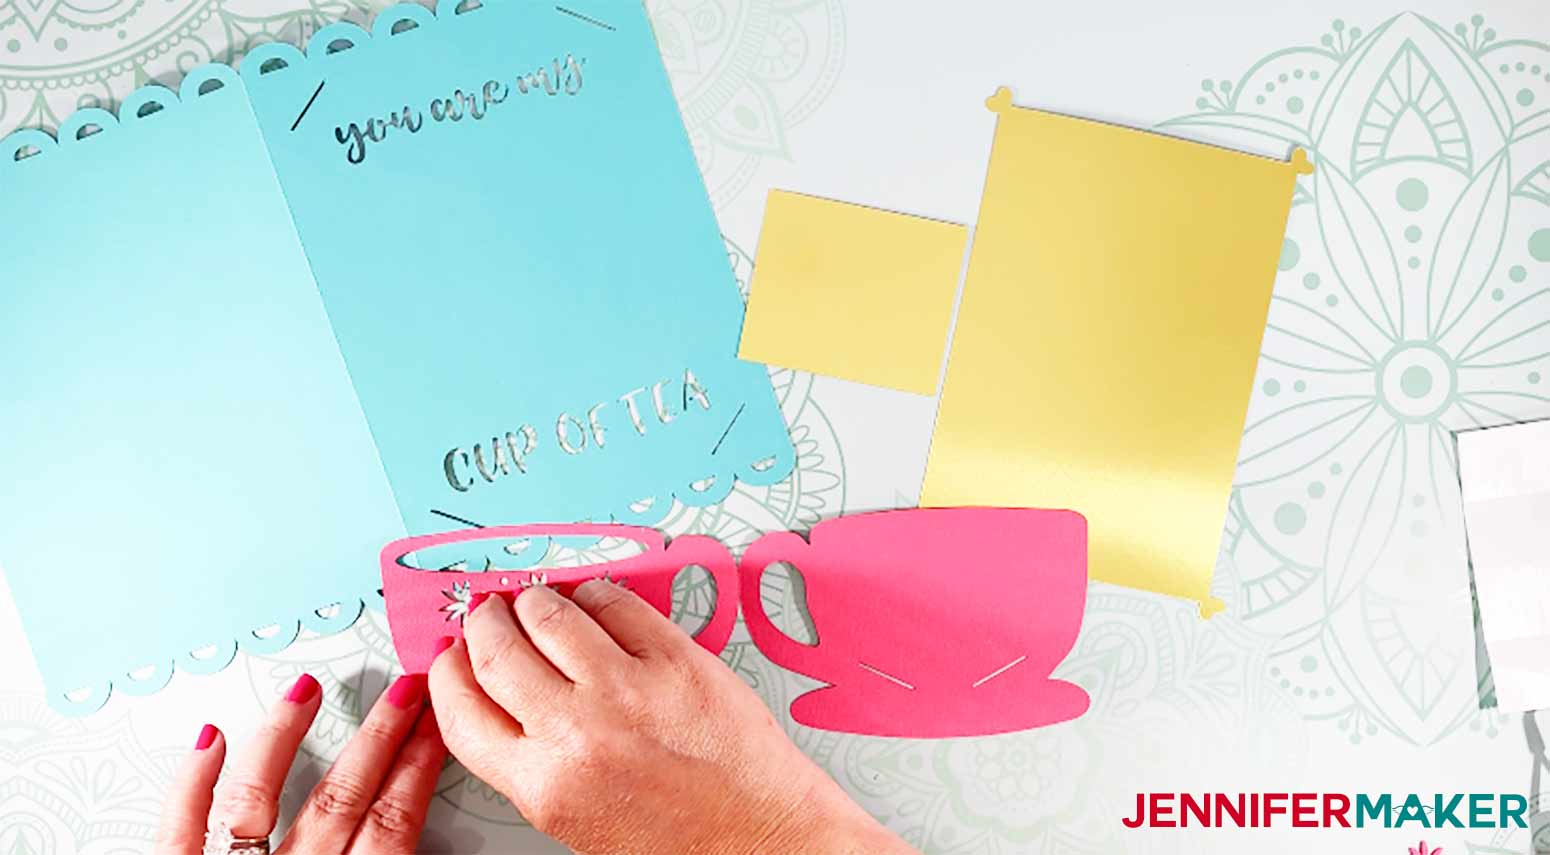 You-Are-My-Cup-Of-Tea-Card-JenniferMaker-Putting-Glue-Dots-On-Cut-For-Insert